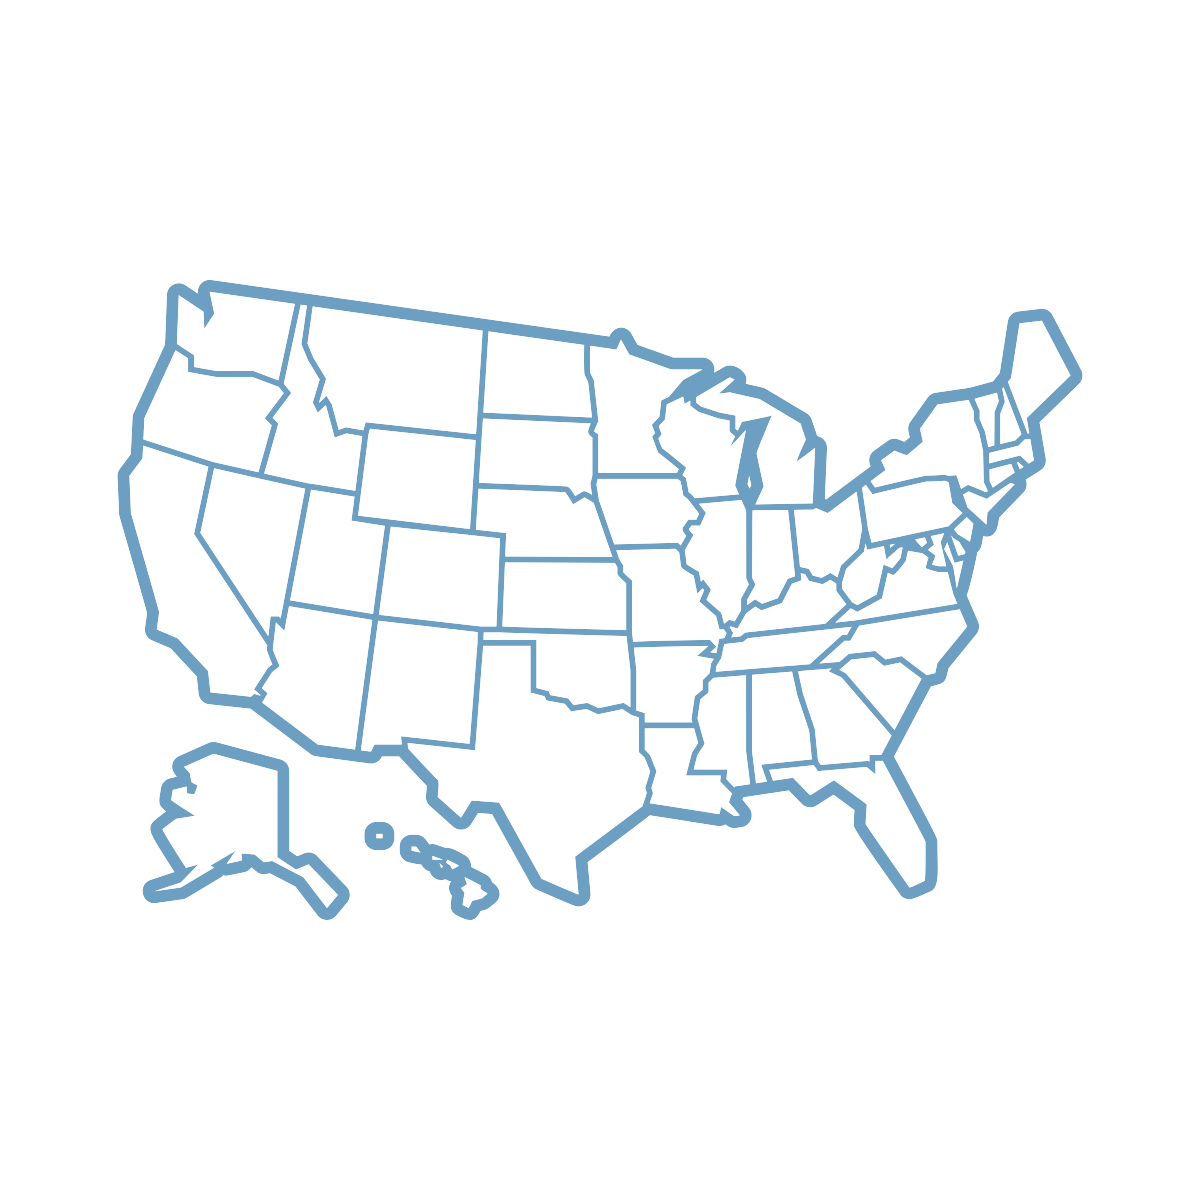 Outline of the map of the United States